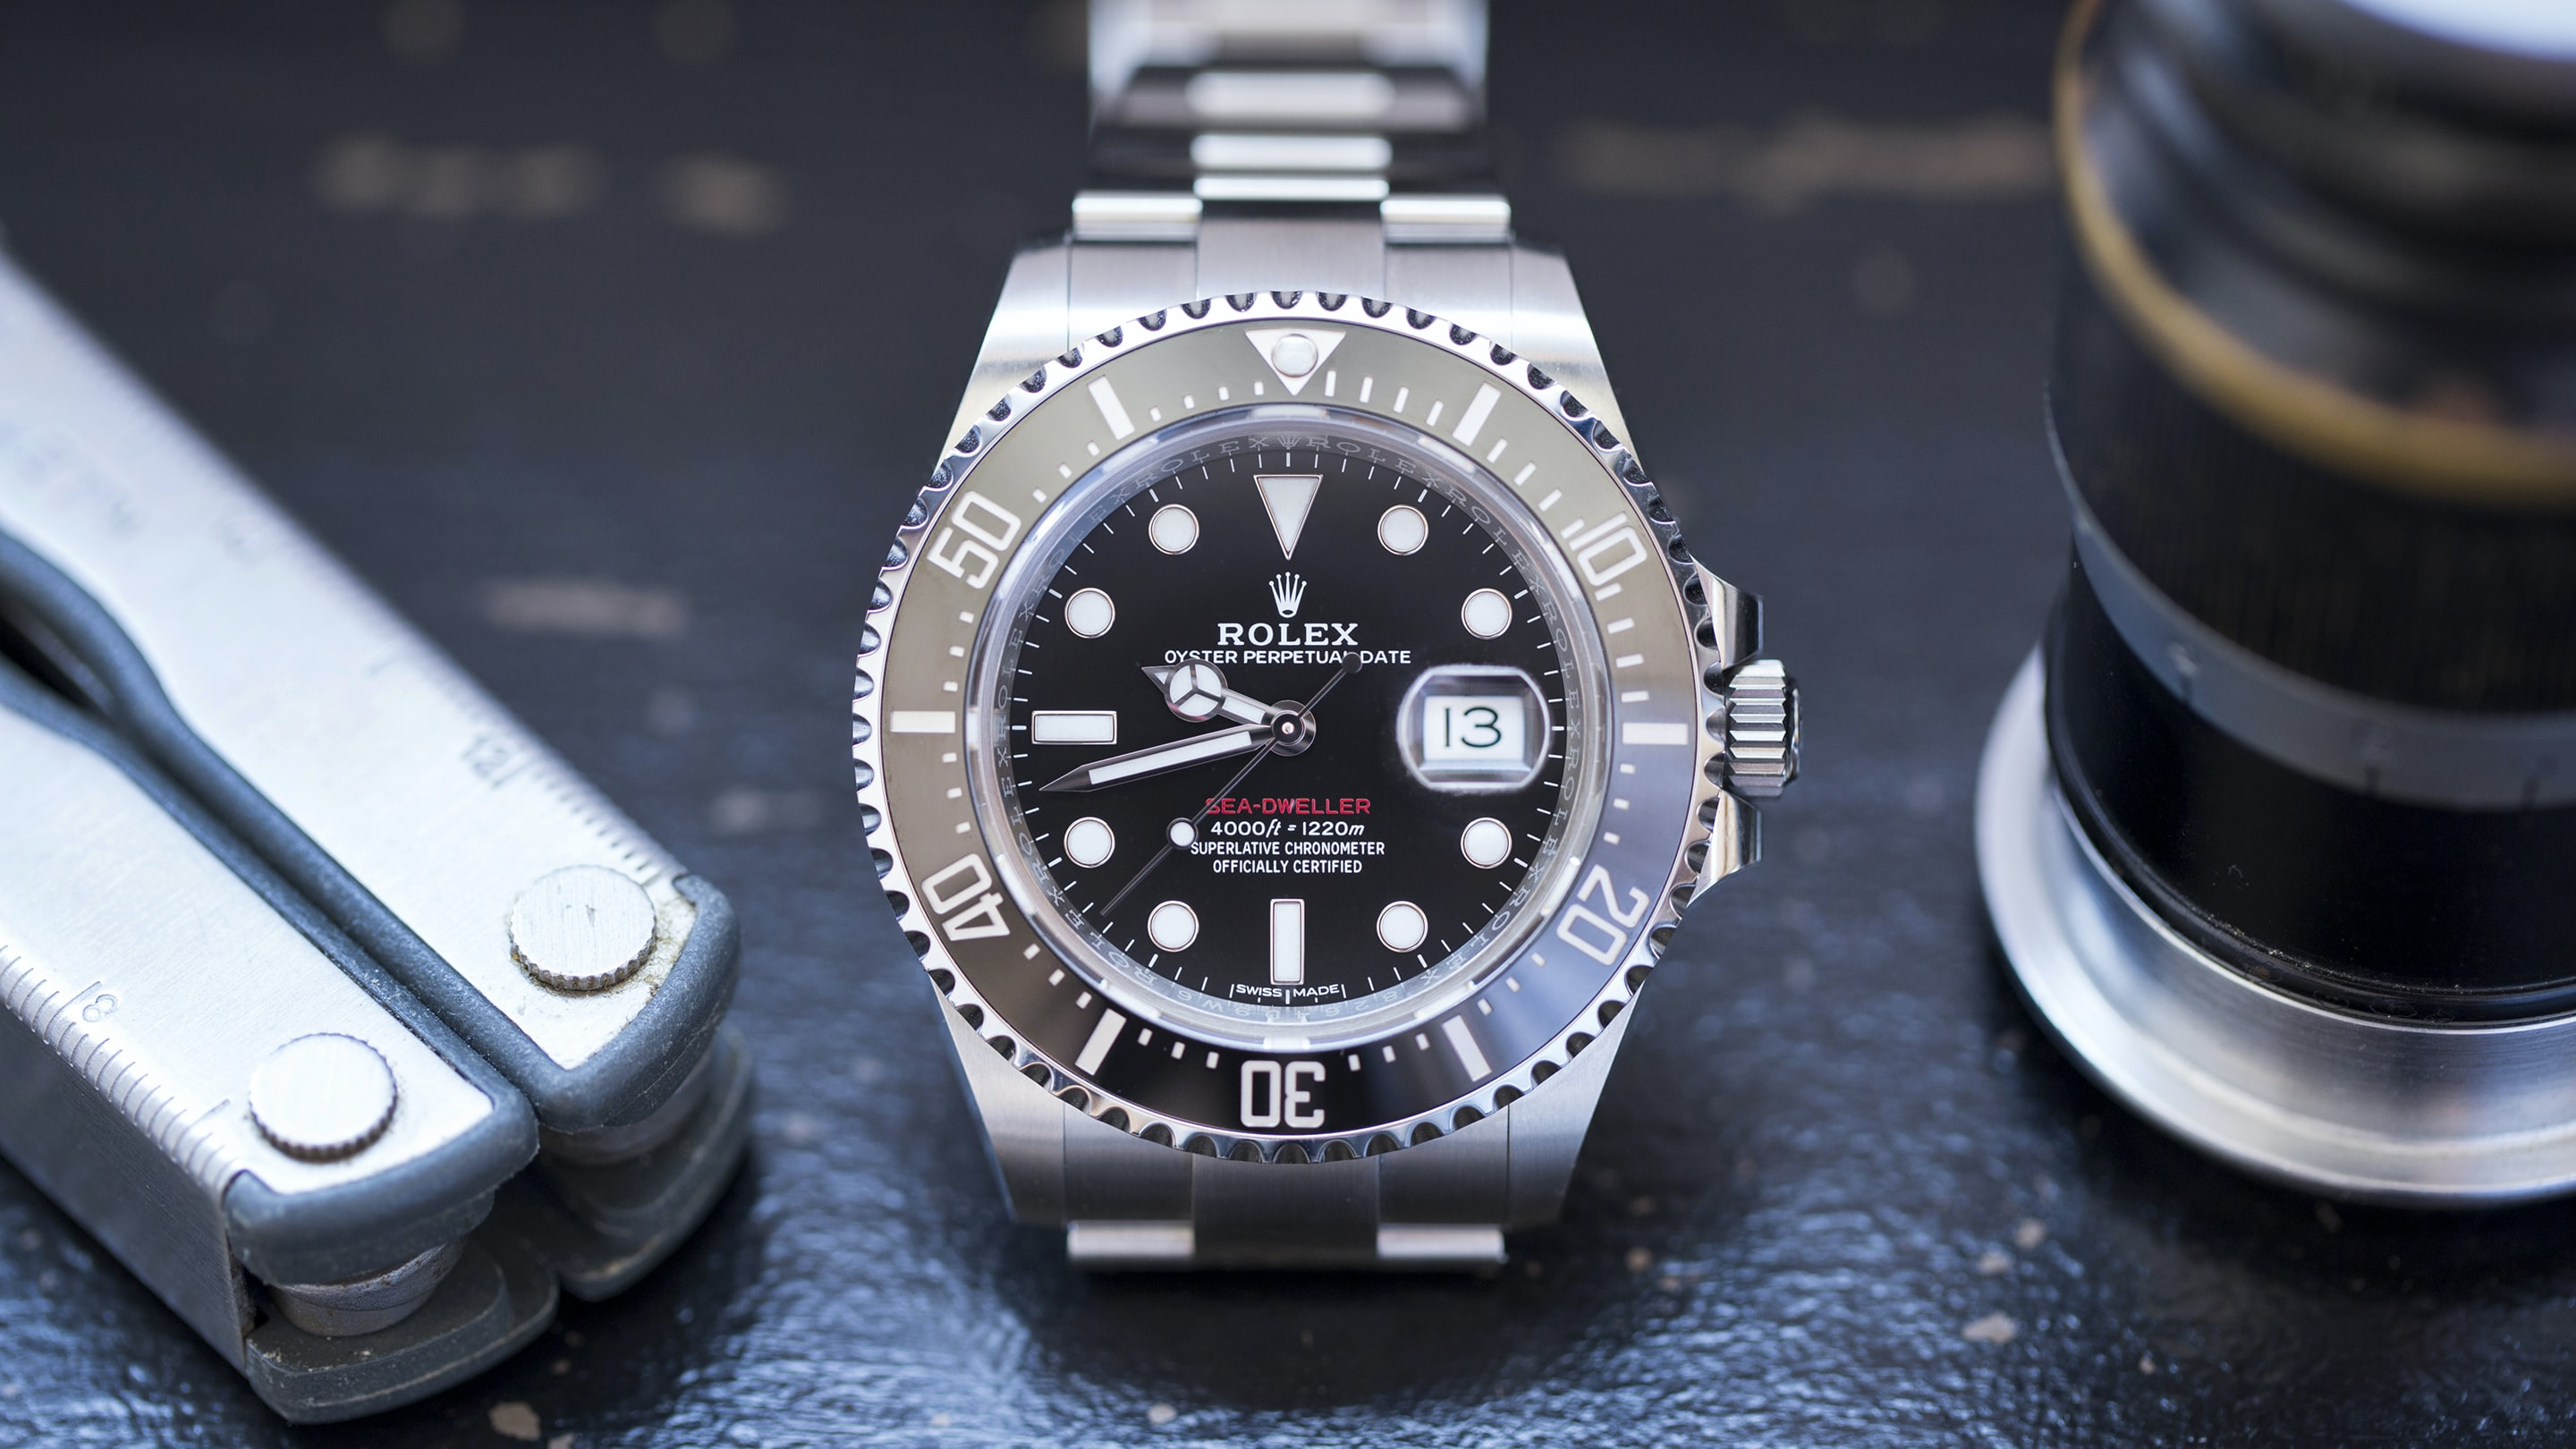 New hero copy.jpg?ixlib=rails 1.1 A Week On The Wrist: The Rolex Sea-Dweller Reference 126600 A Week On The Wrist: The Rolex Sea-Dweller Reference 126600 new hero copy